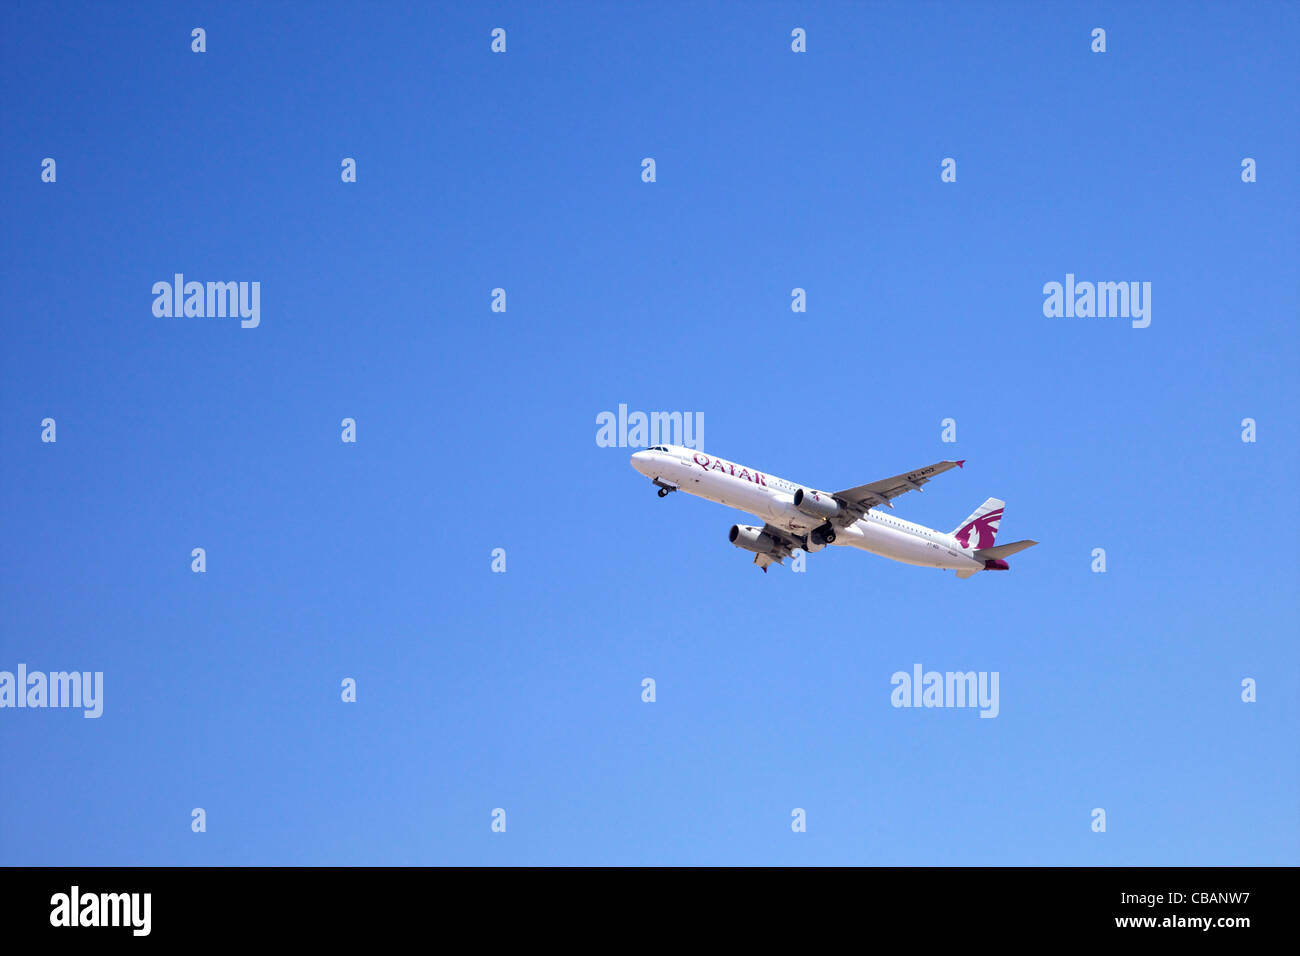 Qatar airliner Airbus A330 aircraft in flight shortly after take-off from Doha International Airport - Stock Image